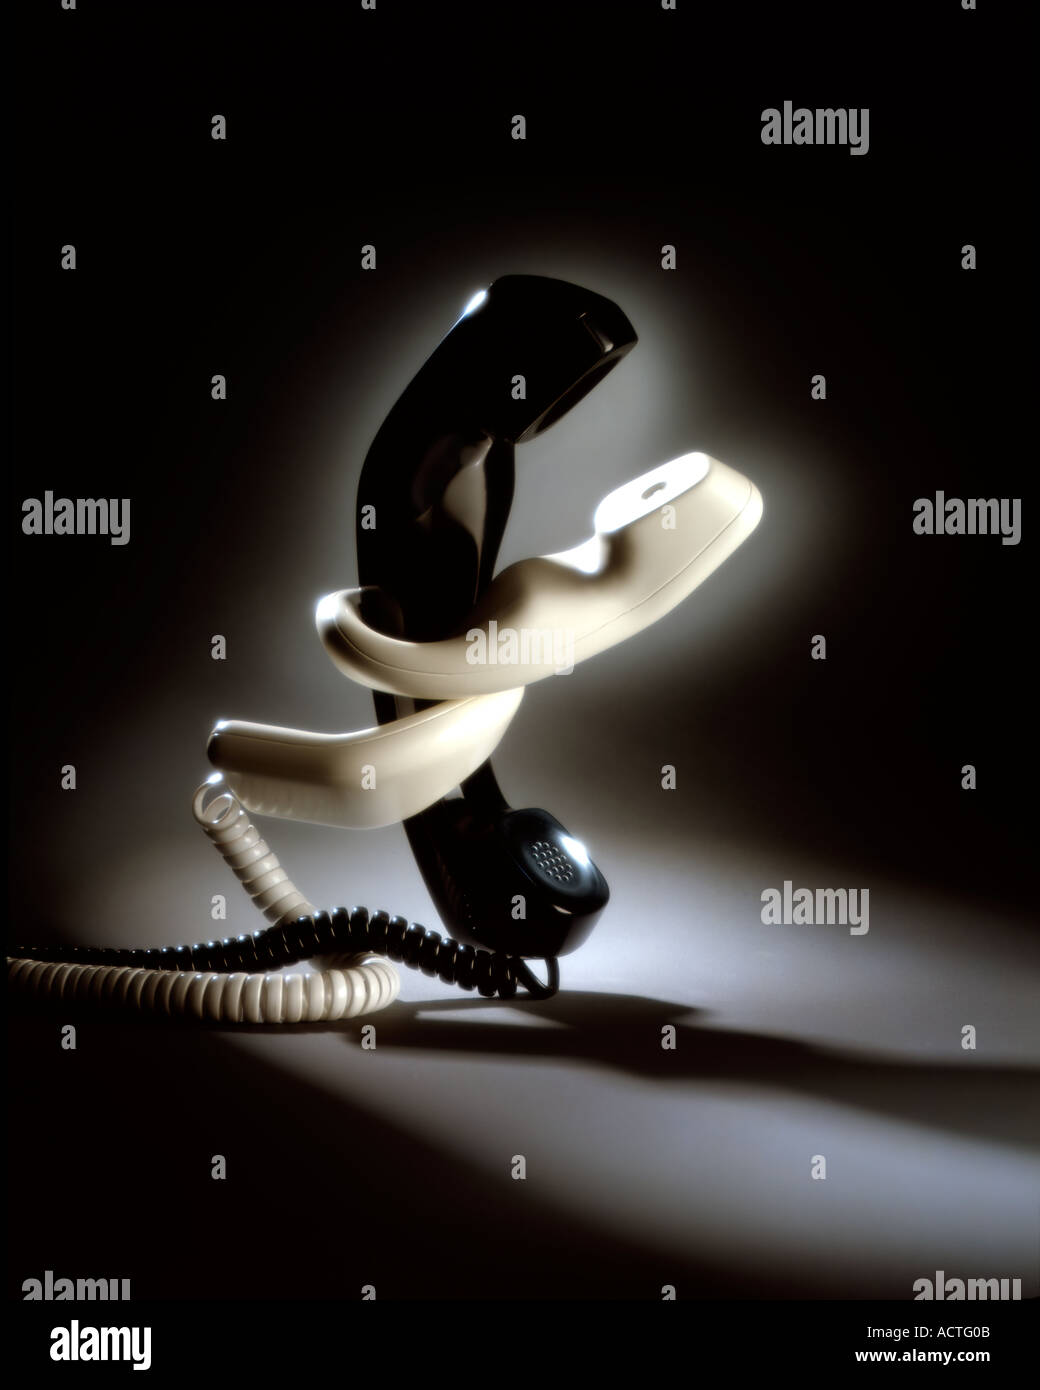 Phones connected two telephones entwined - Stock Image